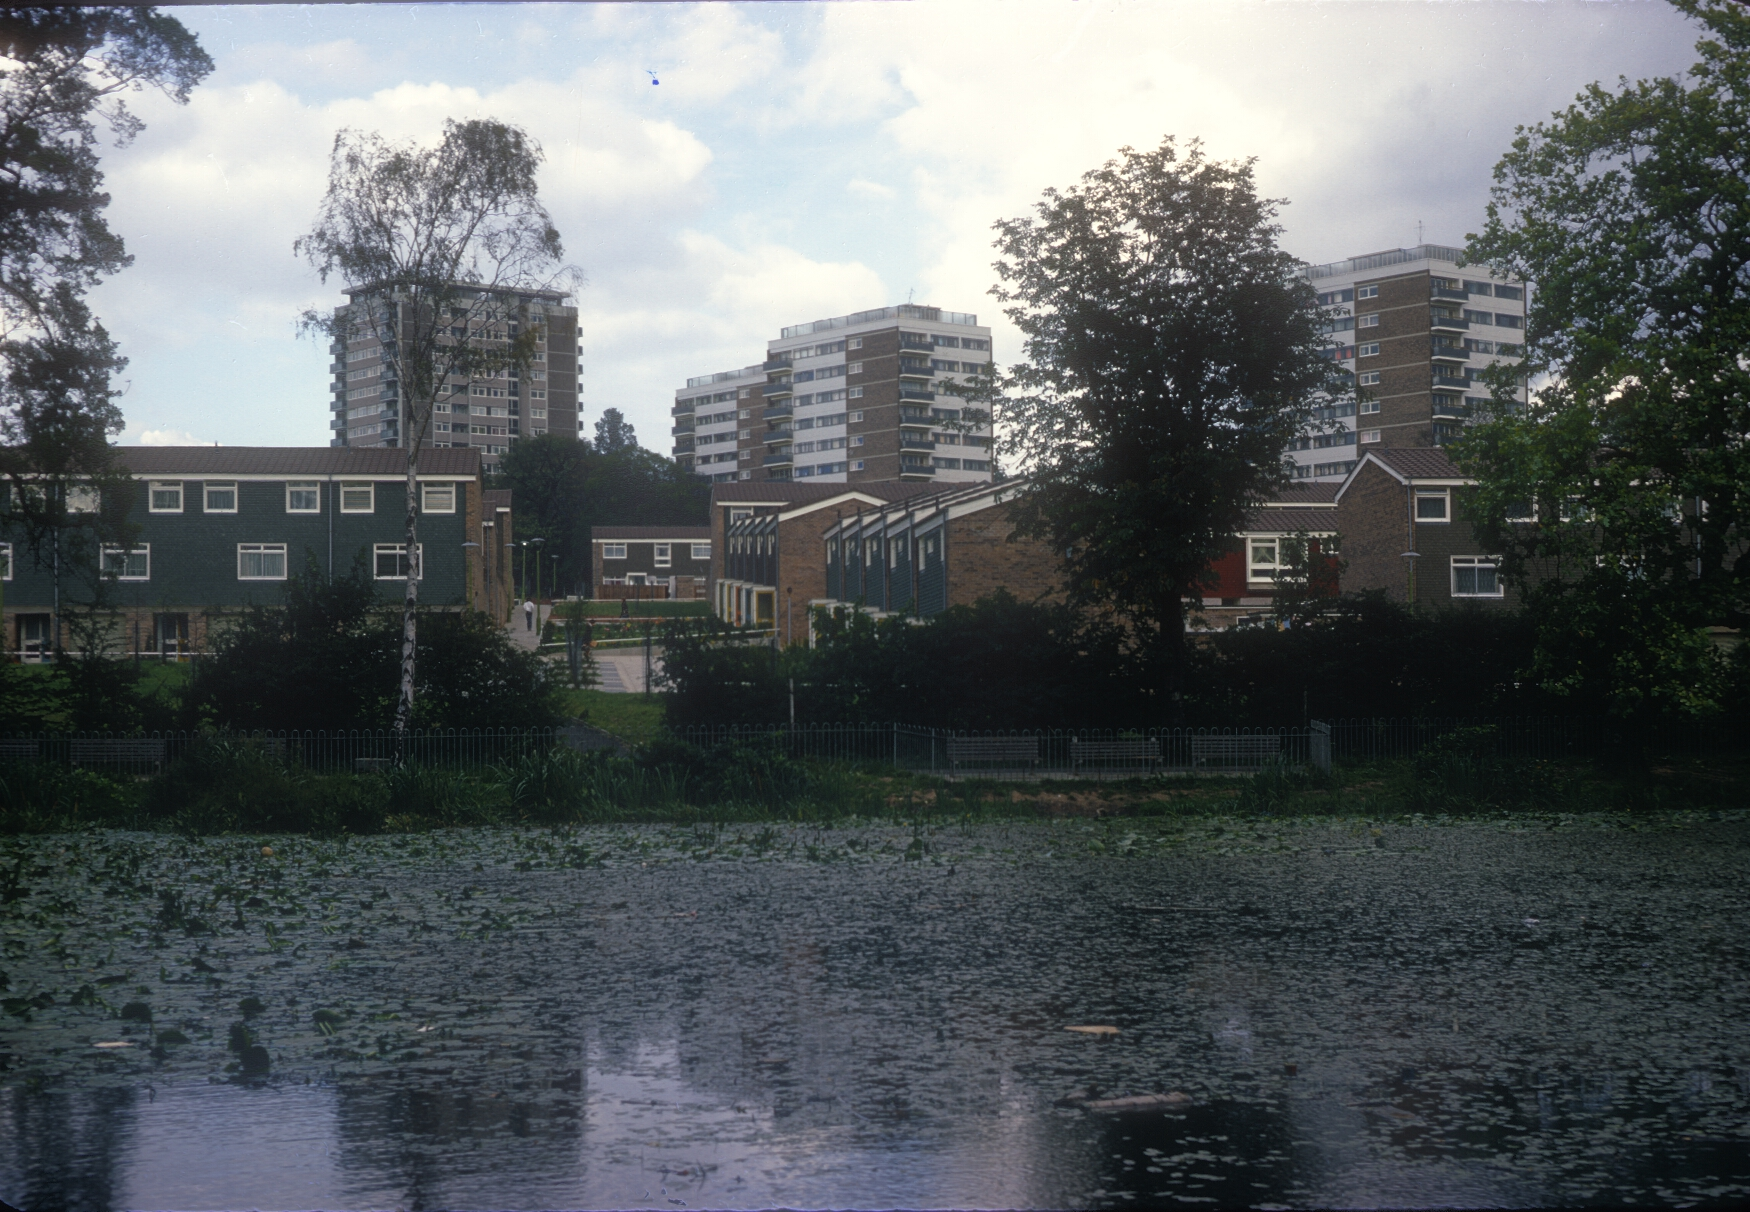 Harborne Metchley Grange Municipal Estate, Cross Farm and Pool. 6th September 1967